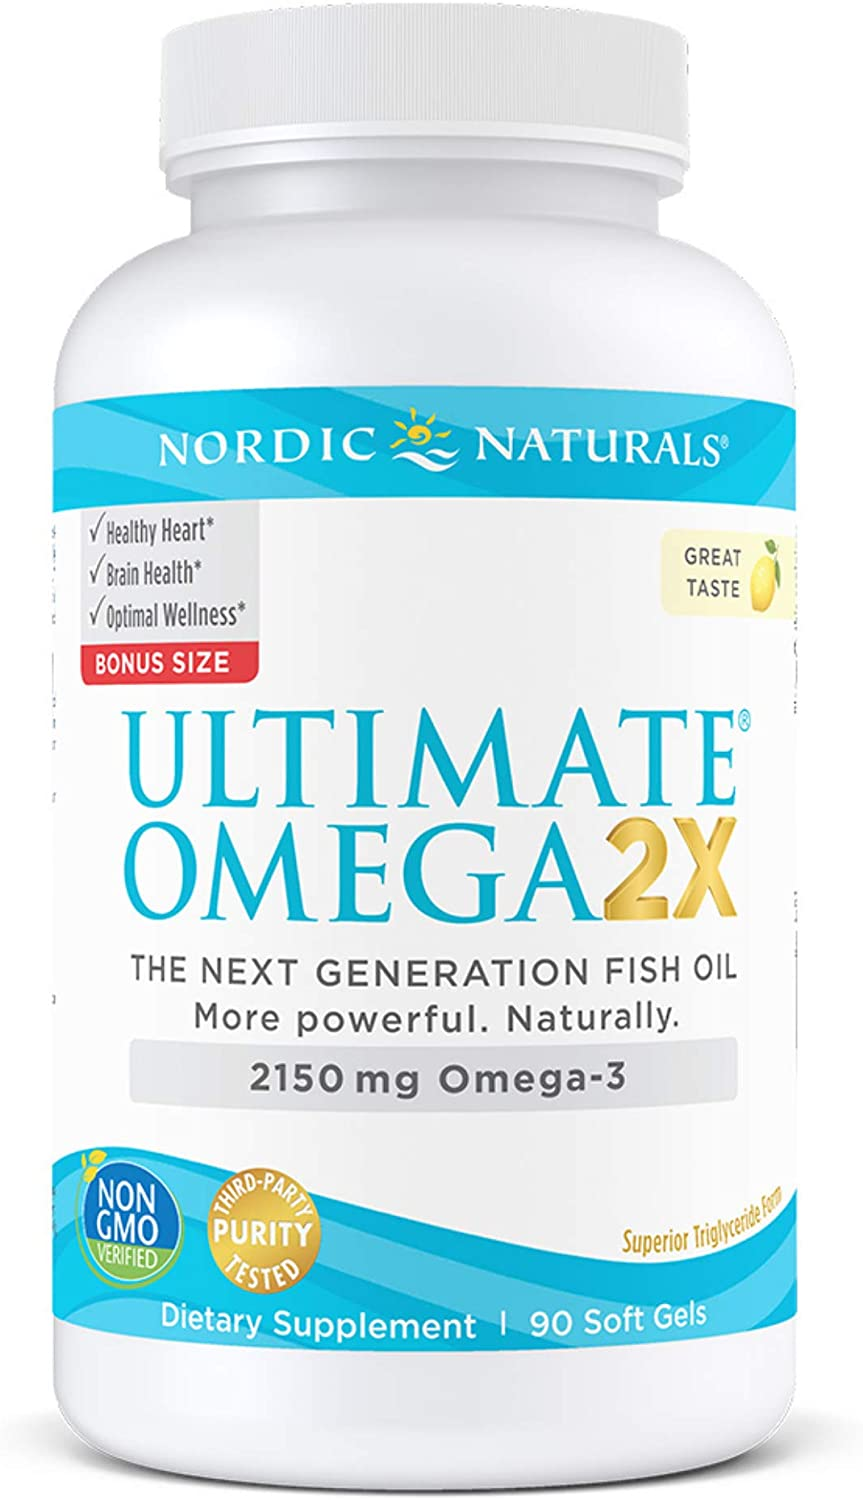 Nordic Naturals Ultimate Omega 2X, Lemon Flavor - 2150 mg Omega-3-90 Soft Gels - High-Potency Omega-3 Fish Oil with EPA & DHA - Promotes Brain & Heart Health - Non-GMO - 45 Servings